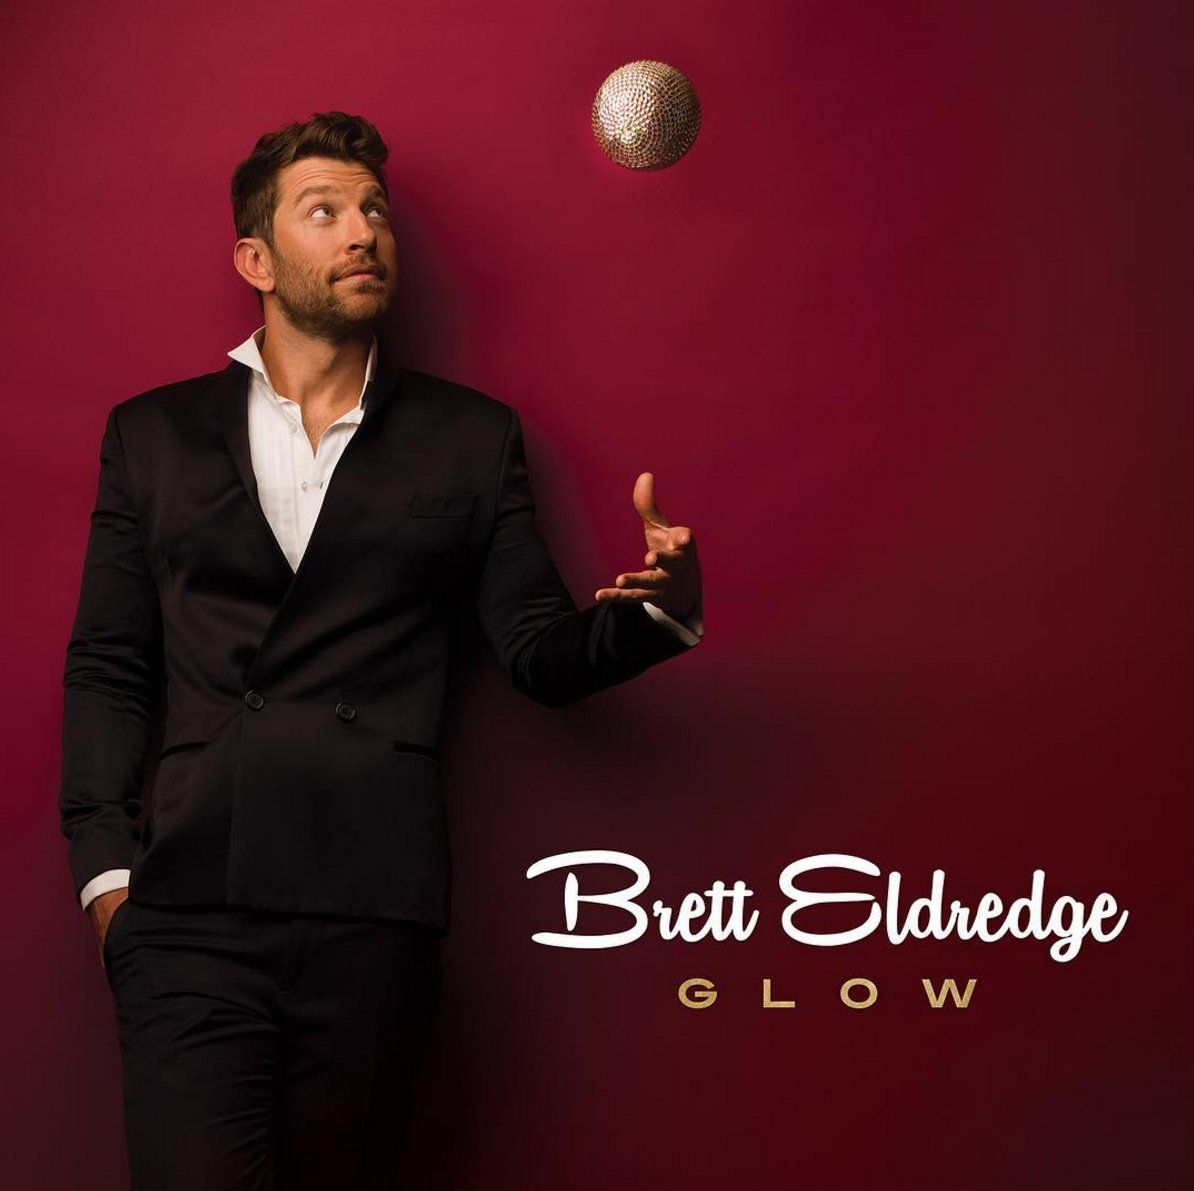 Brett Eldredge - Glow album cover